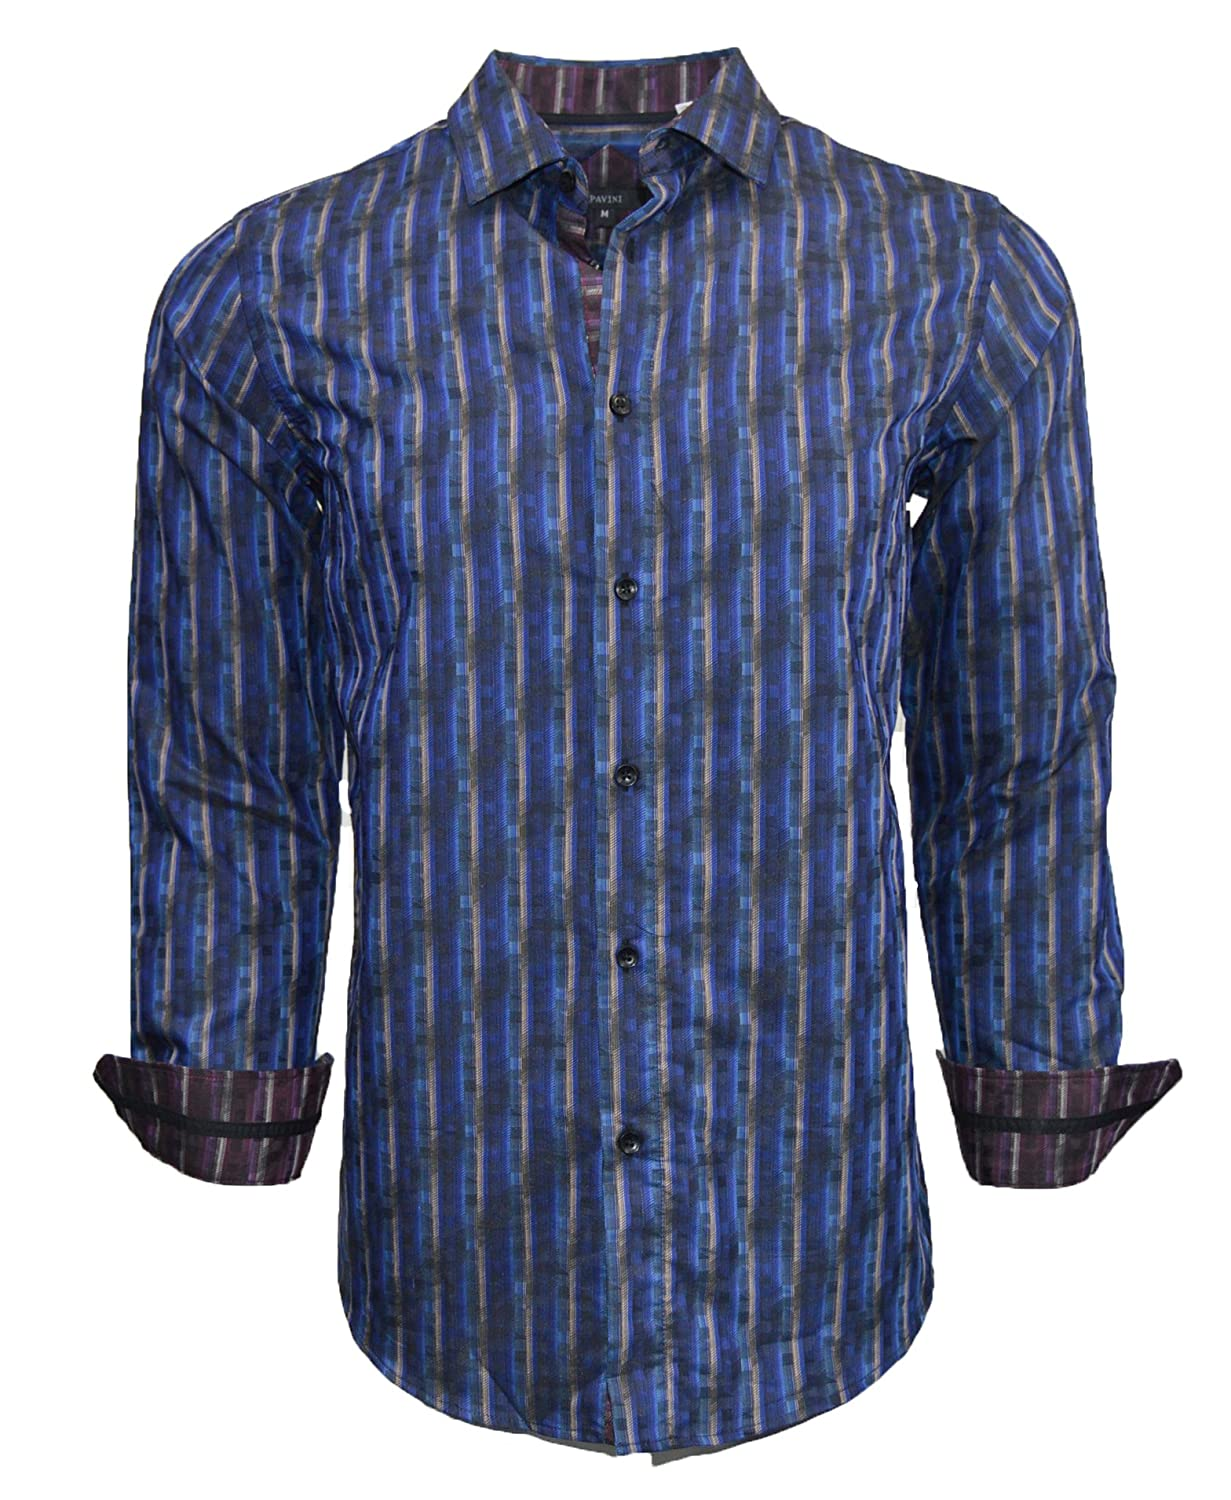 PAVINI Long Sleeve Button Down Woven Shirt Small